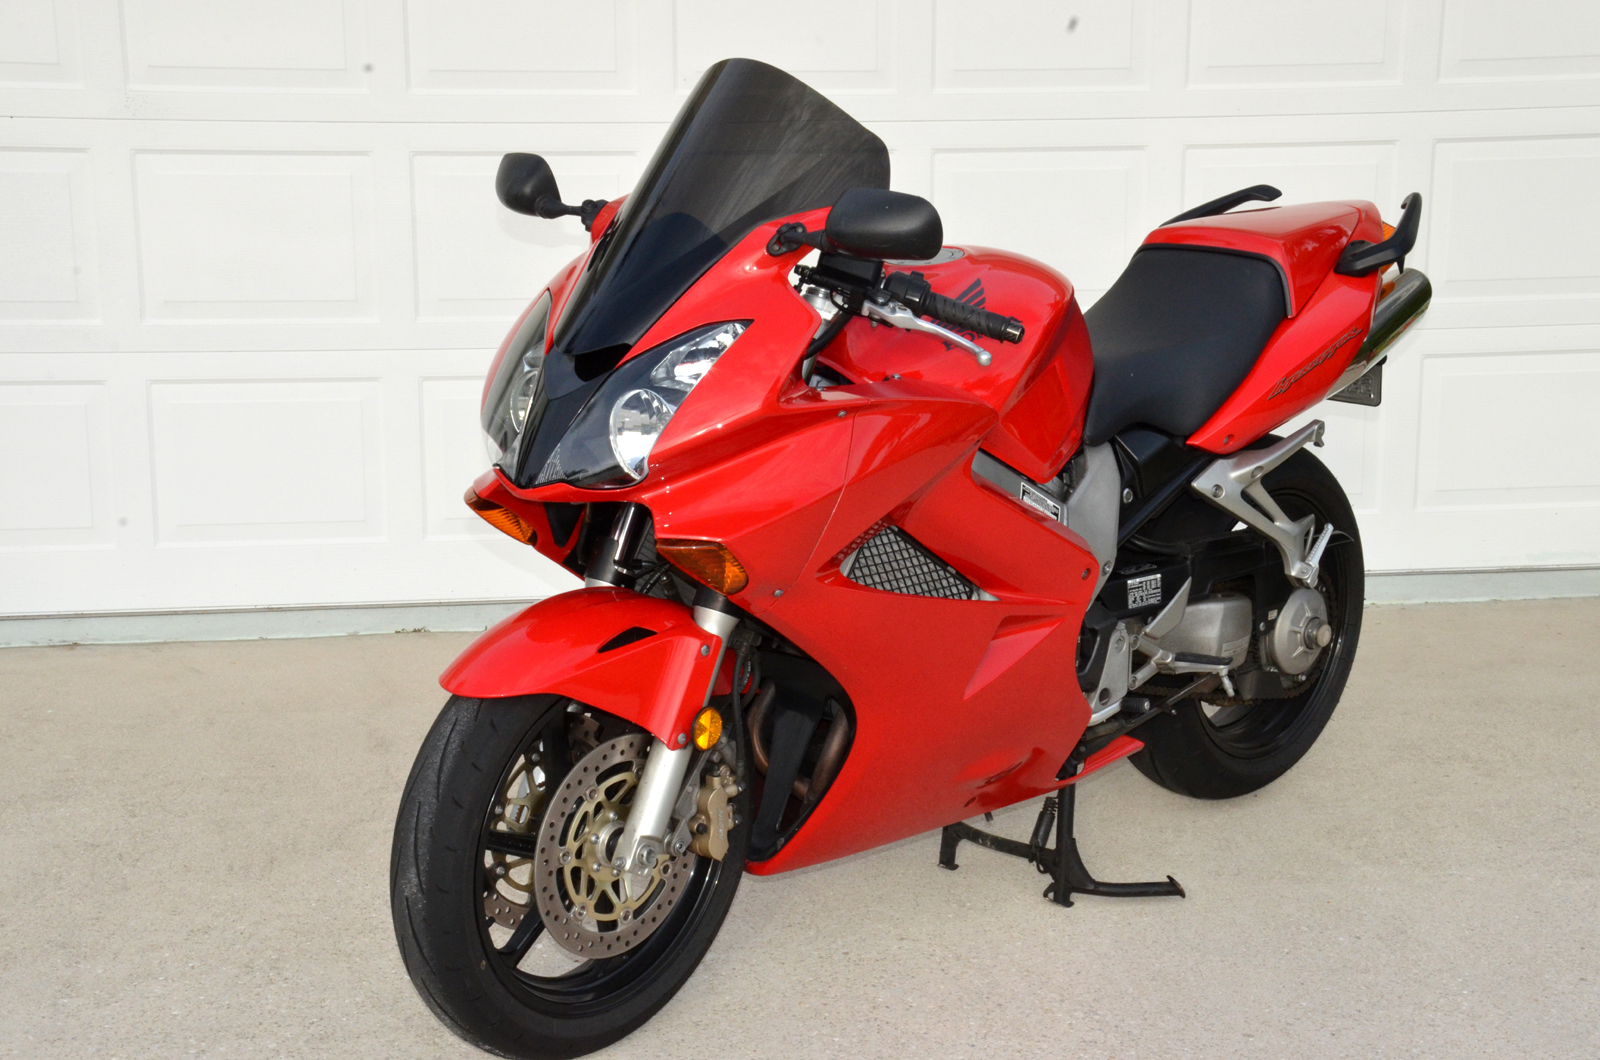 2007 honda vfr 800 abs pics specs and information. Black Bedroom Furniture Sets. Home Design Ideas